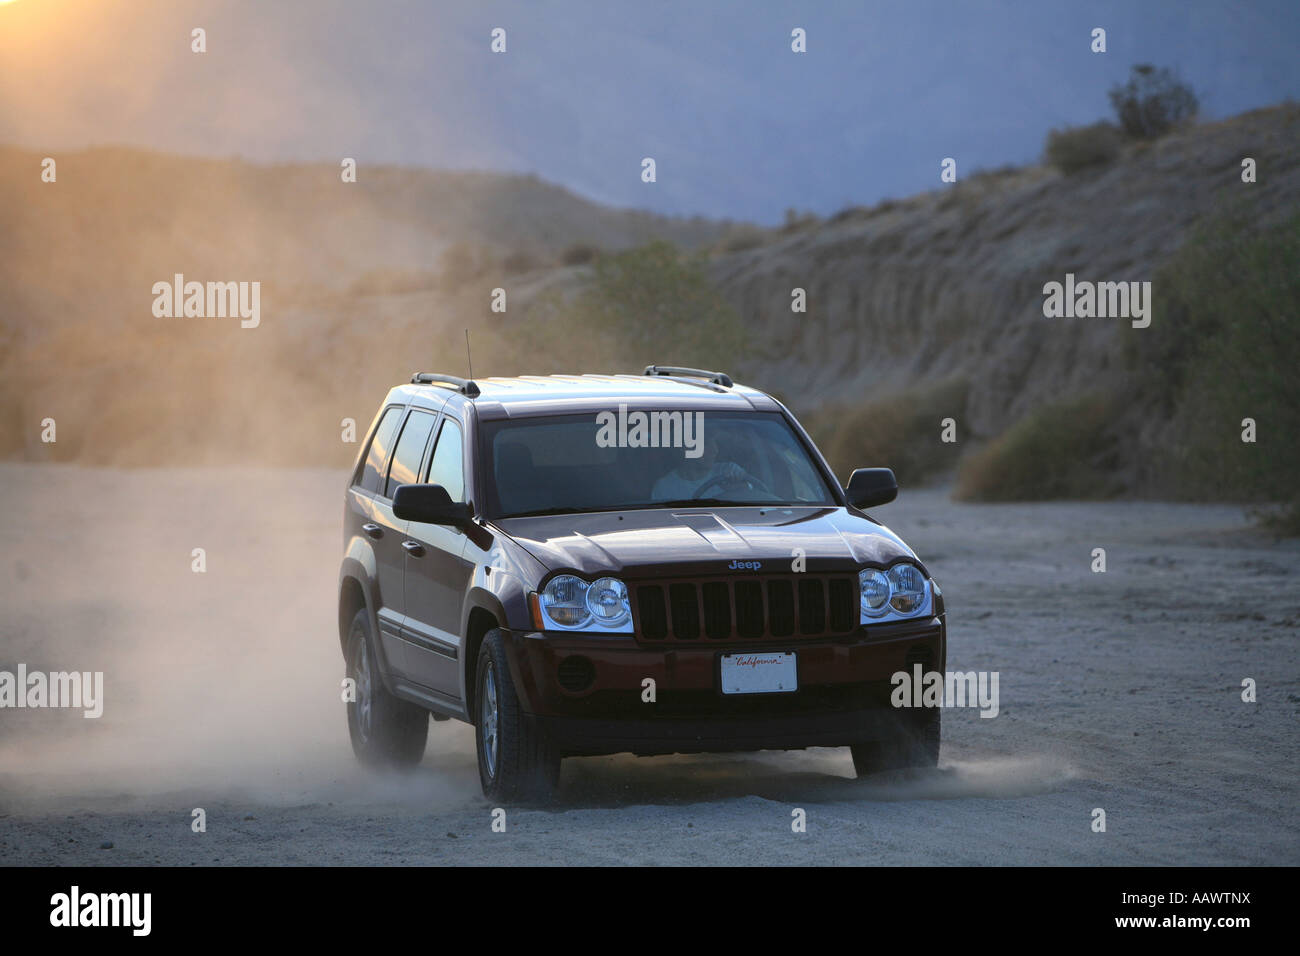 Jeep SUV driving offroad, braking and creating dust, Anza Borrego Desert, California, USA - Stock Image